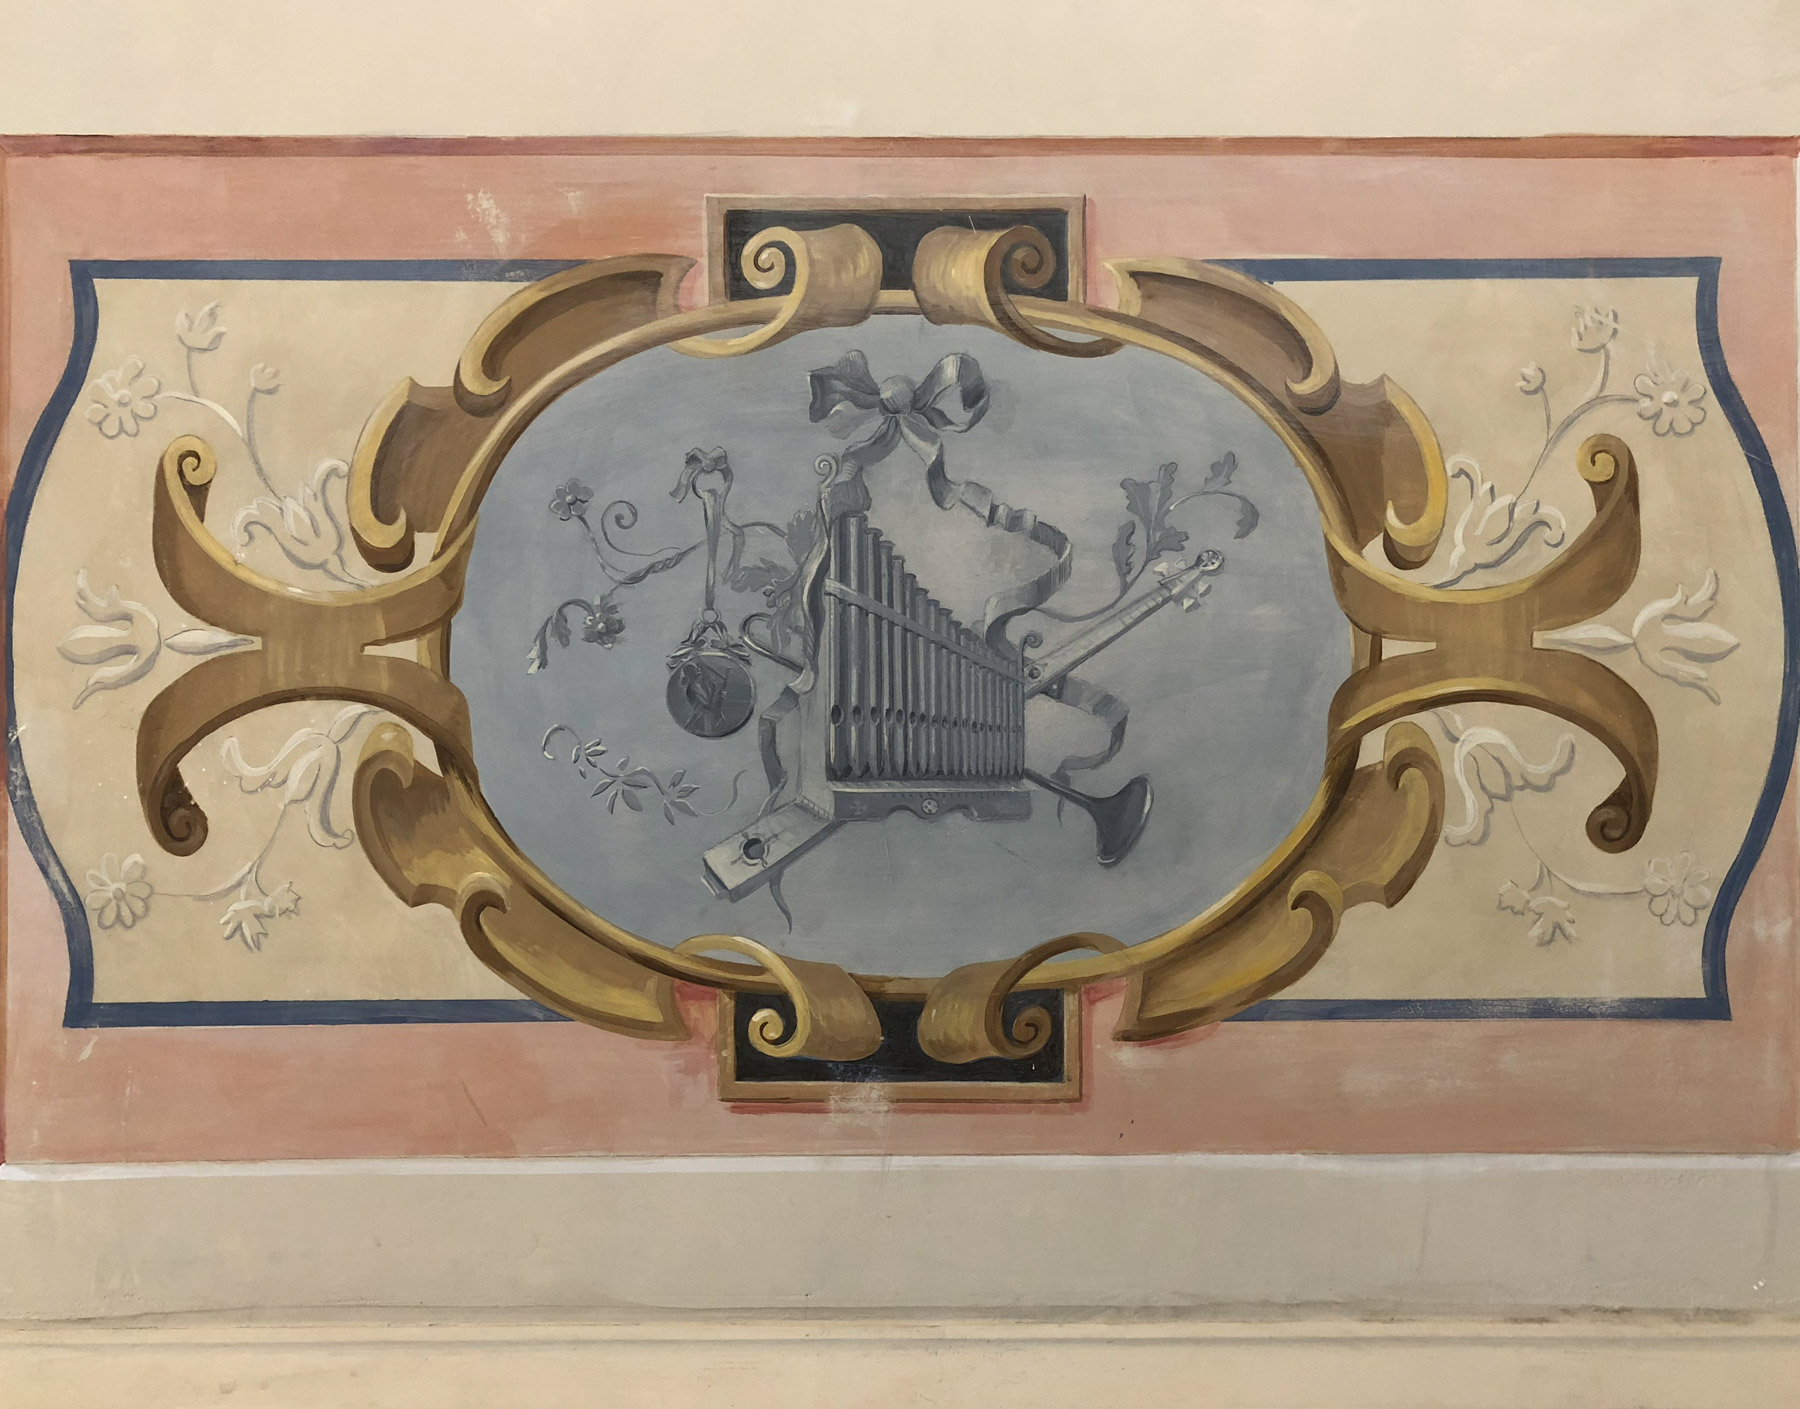 Mural detail with vignette of musical instruments